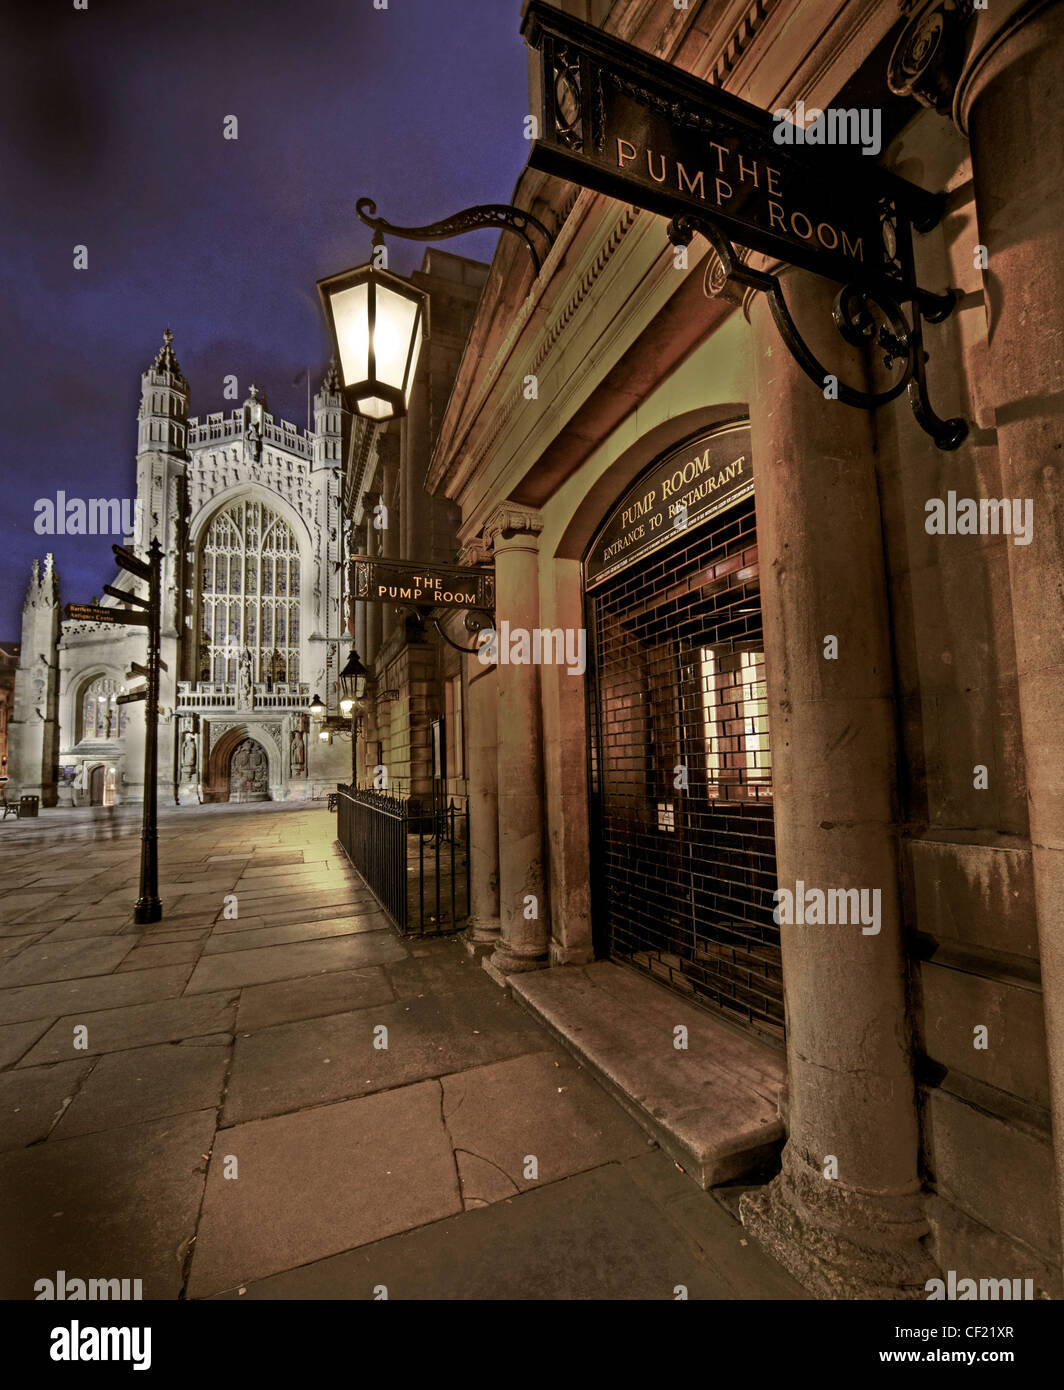 City of Bath,Pump,Room,and,Abbey,at,Dusk,gotonysmith,hotpixuk,night,dusk,shot,history,avon,historic,streets,street,gotonysmith,Buy Pictures of,Buy Images Of,Bath,Pump,Room,and,Abbey,at,Dusk,Avon,Bristol,City,of,Bath,Pump,Room,and,Abbey,at,Dusk,The,Roman,Baths,complex,is,a,site,of,historical,interest,in,the,English,city,of,Bath.,The,house,is,a,well-preserved,Roman,site,for,public,bathing.,The,Roman,Baths,themselves,are,below,the,modern,street,level.,There,are,four,main,features,the Sacred Spring,the Roman Temple,the,Roman,Bath,House,and,the,Museum,holding,finds,from,Roman,Bath.,The,buildings,above,street,level,date,from,the,19th,century.,The,Baths,are,a,major,tourist,attraction,and,together,with,the,Grand,Pump,Room,receive,more,than,one,million,visitors,a,year,with 1,037,518,people,during,2009.,It,was,featured,on,the,2005,TV,program,Seven,Natural,Wonders,as,one,of,the,wonders,of,the,West,Country.,Visitors,can,see,the,Baths,and,Museum,but,cannot,enter,the,water.,An,audio,guide,is,available